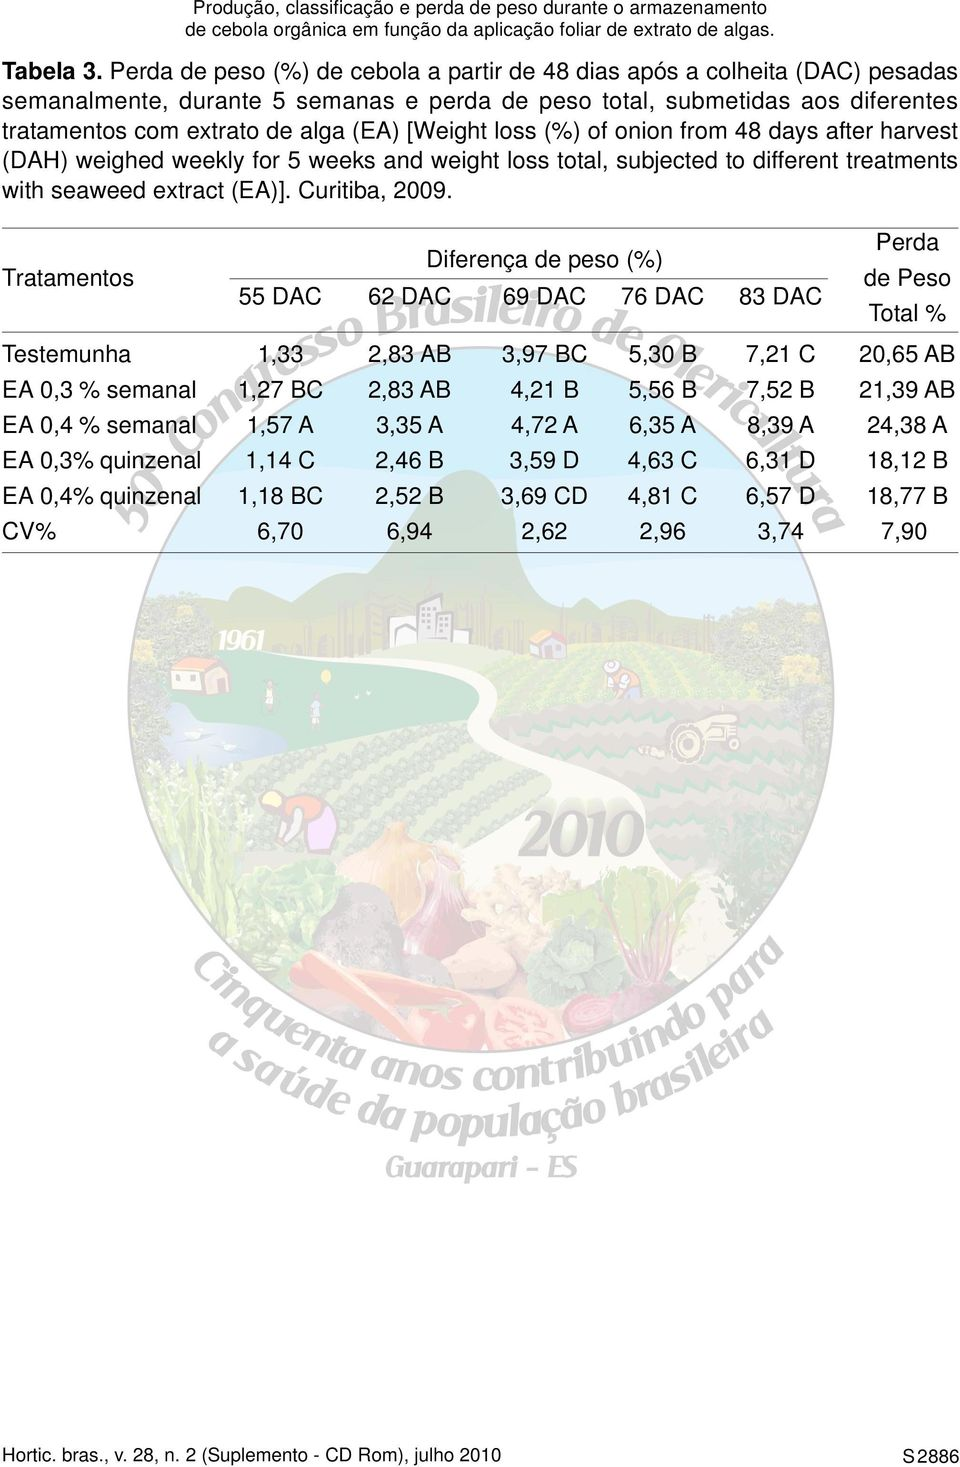 [Weight loss (%) of onion from 48 days after harvest (DAH) weighed weekly for 5 weeks and weight loss total, subjected to different treatments with seaweed extract (EA)]. Curitiba, 2009.